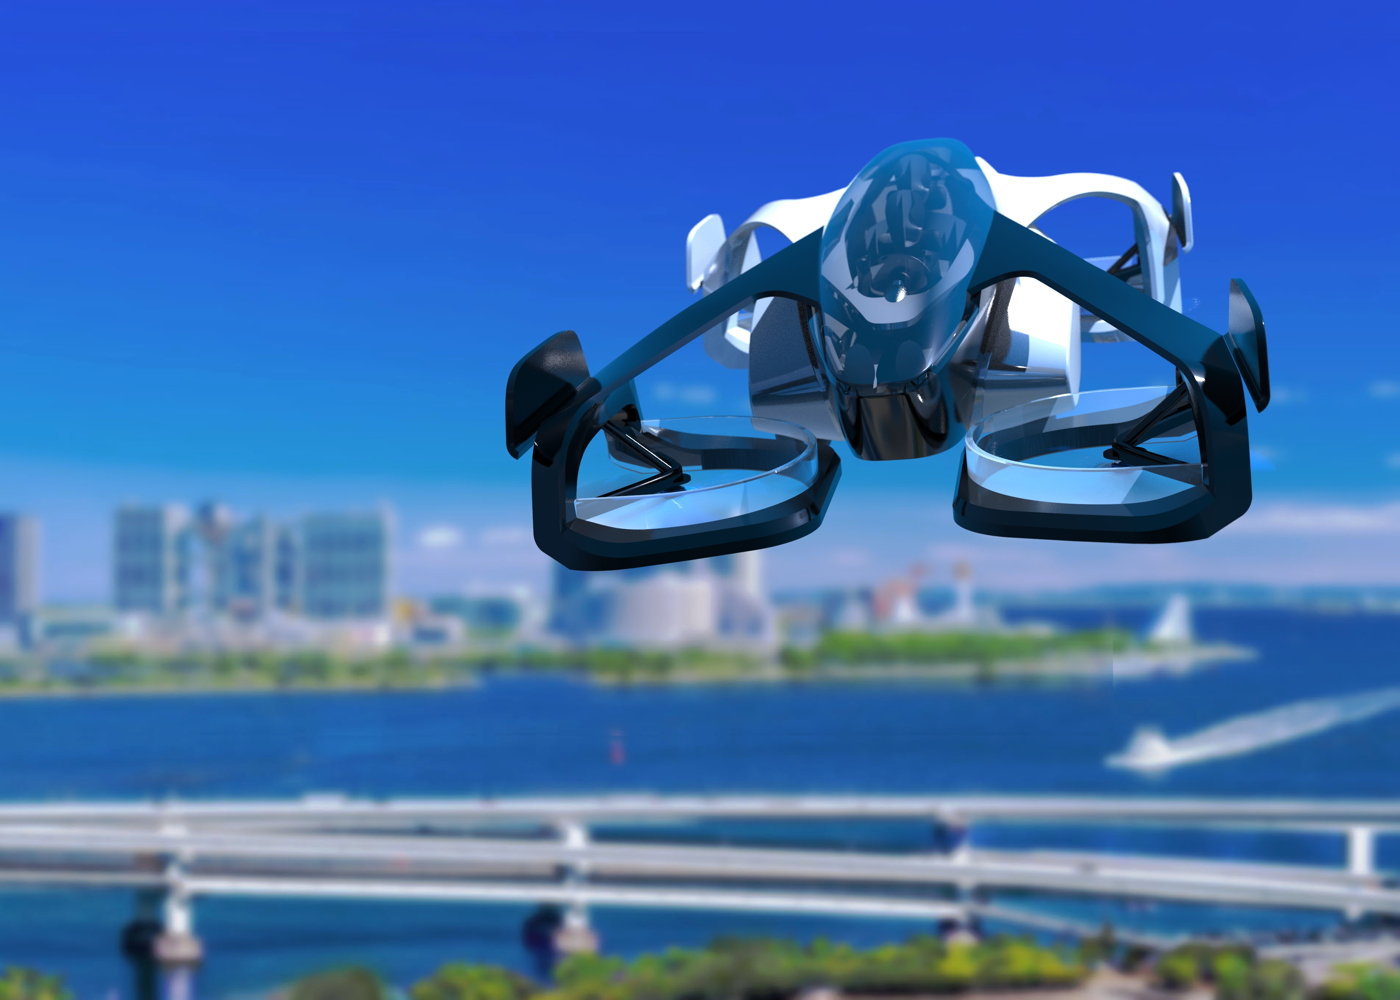 SkyDrive-Concept flying cars